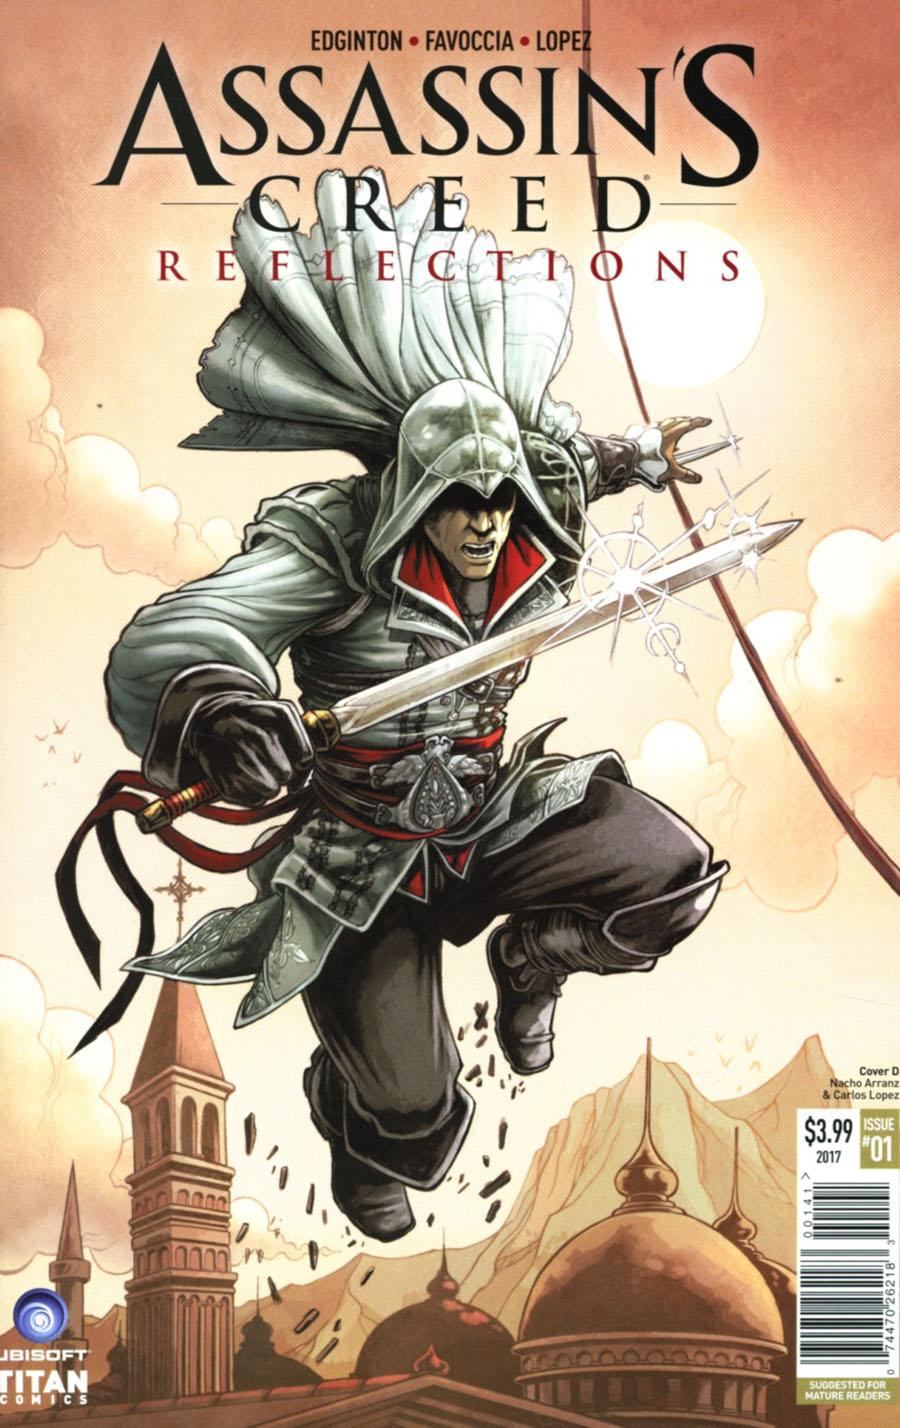 Assassins Creed Reflections #1 Cover D Variant Nacho Arranz Cover